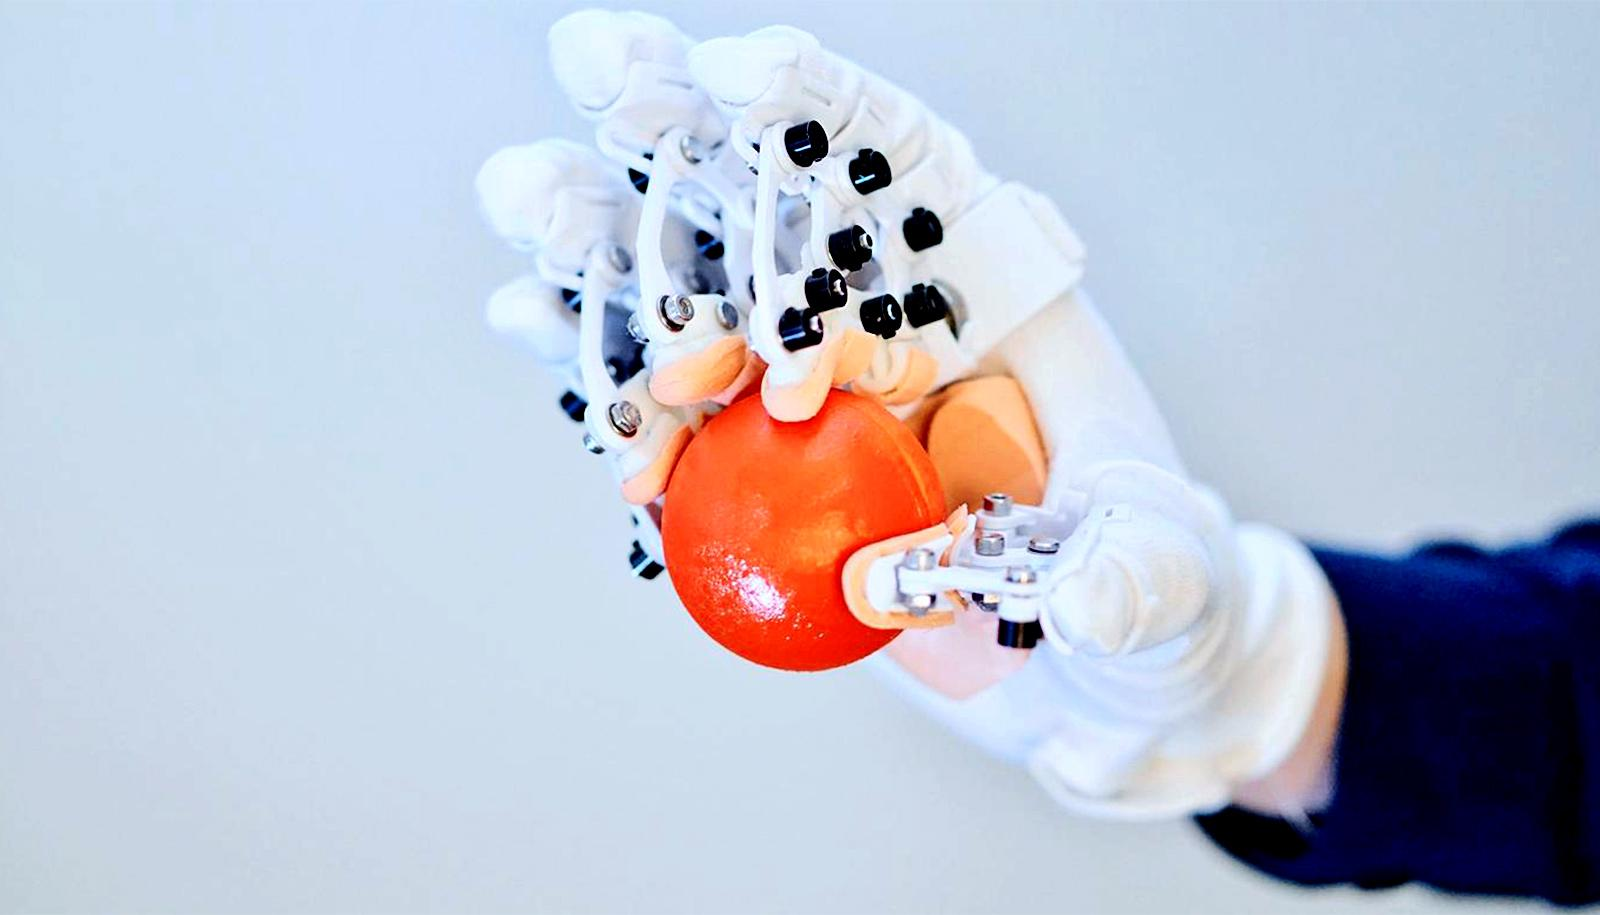 A person wearing the HandMorph glove grips a small orange ball